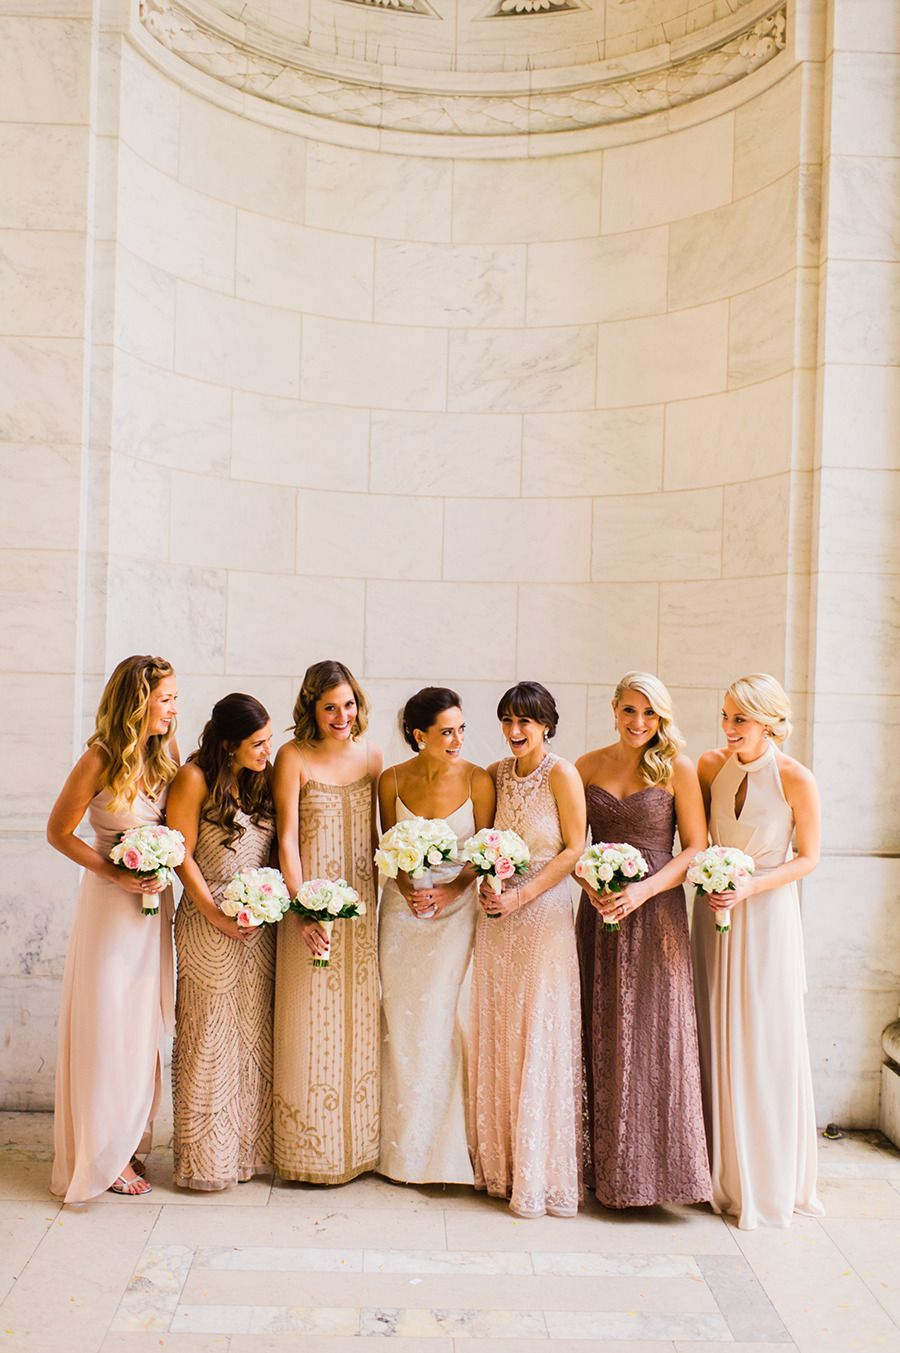 I Absolutely Love Seeing Brides Choose To Have Mismatched Bridesmaid Dresses For Their Wedding Party They Are So Incredibly Stylish And Will Look